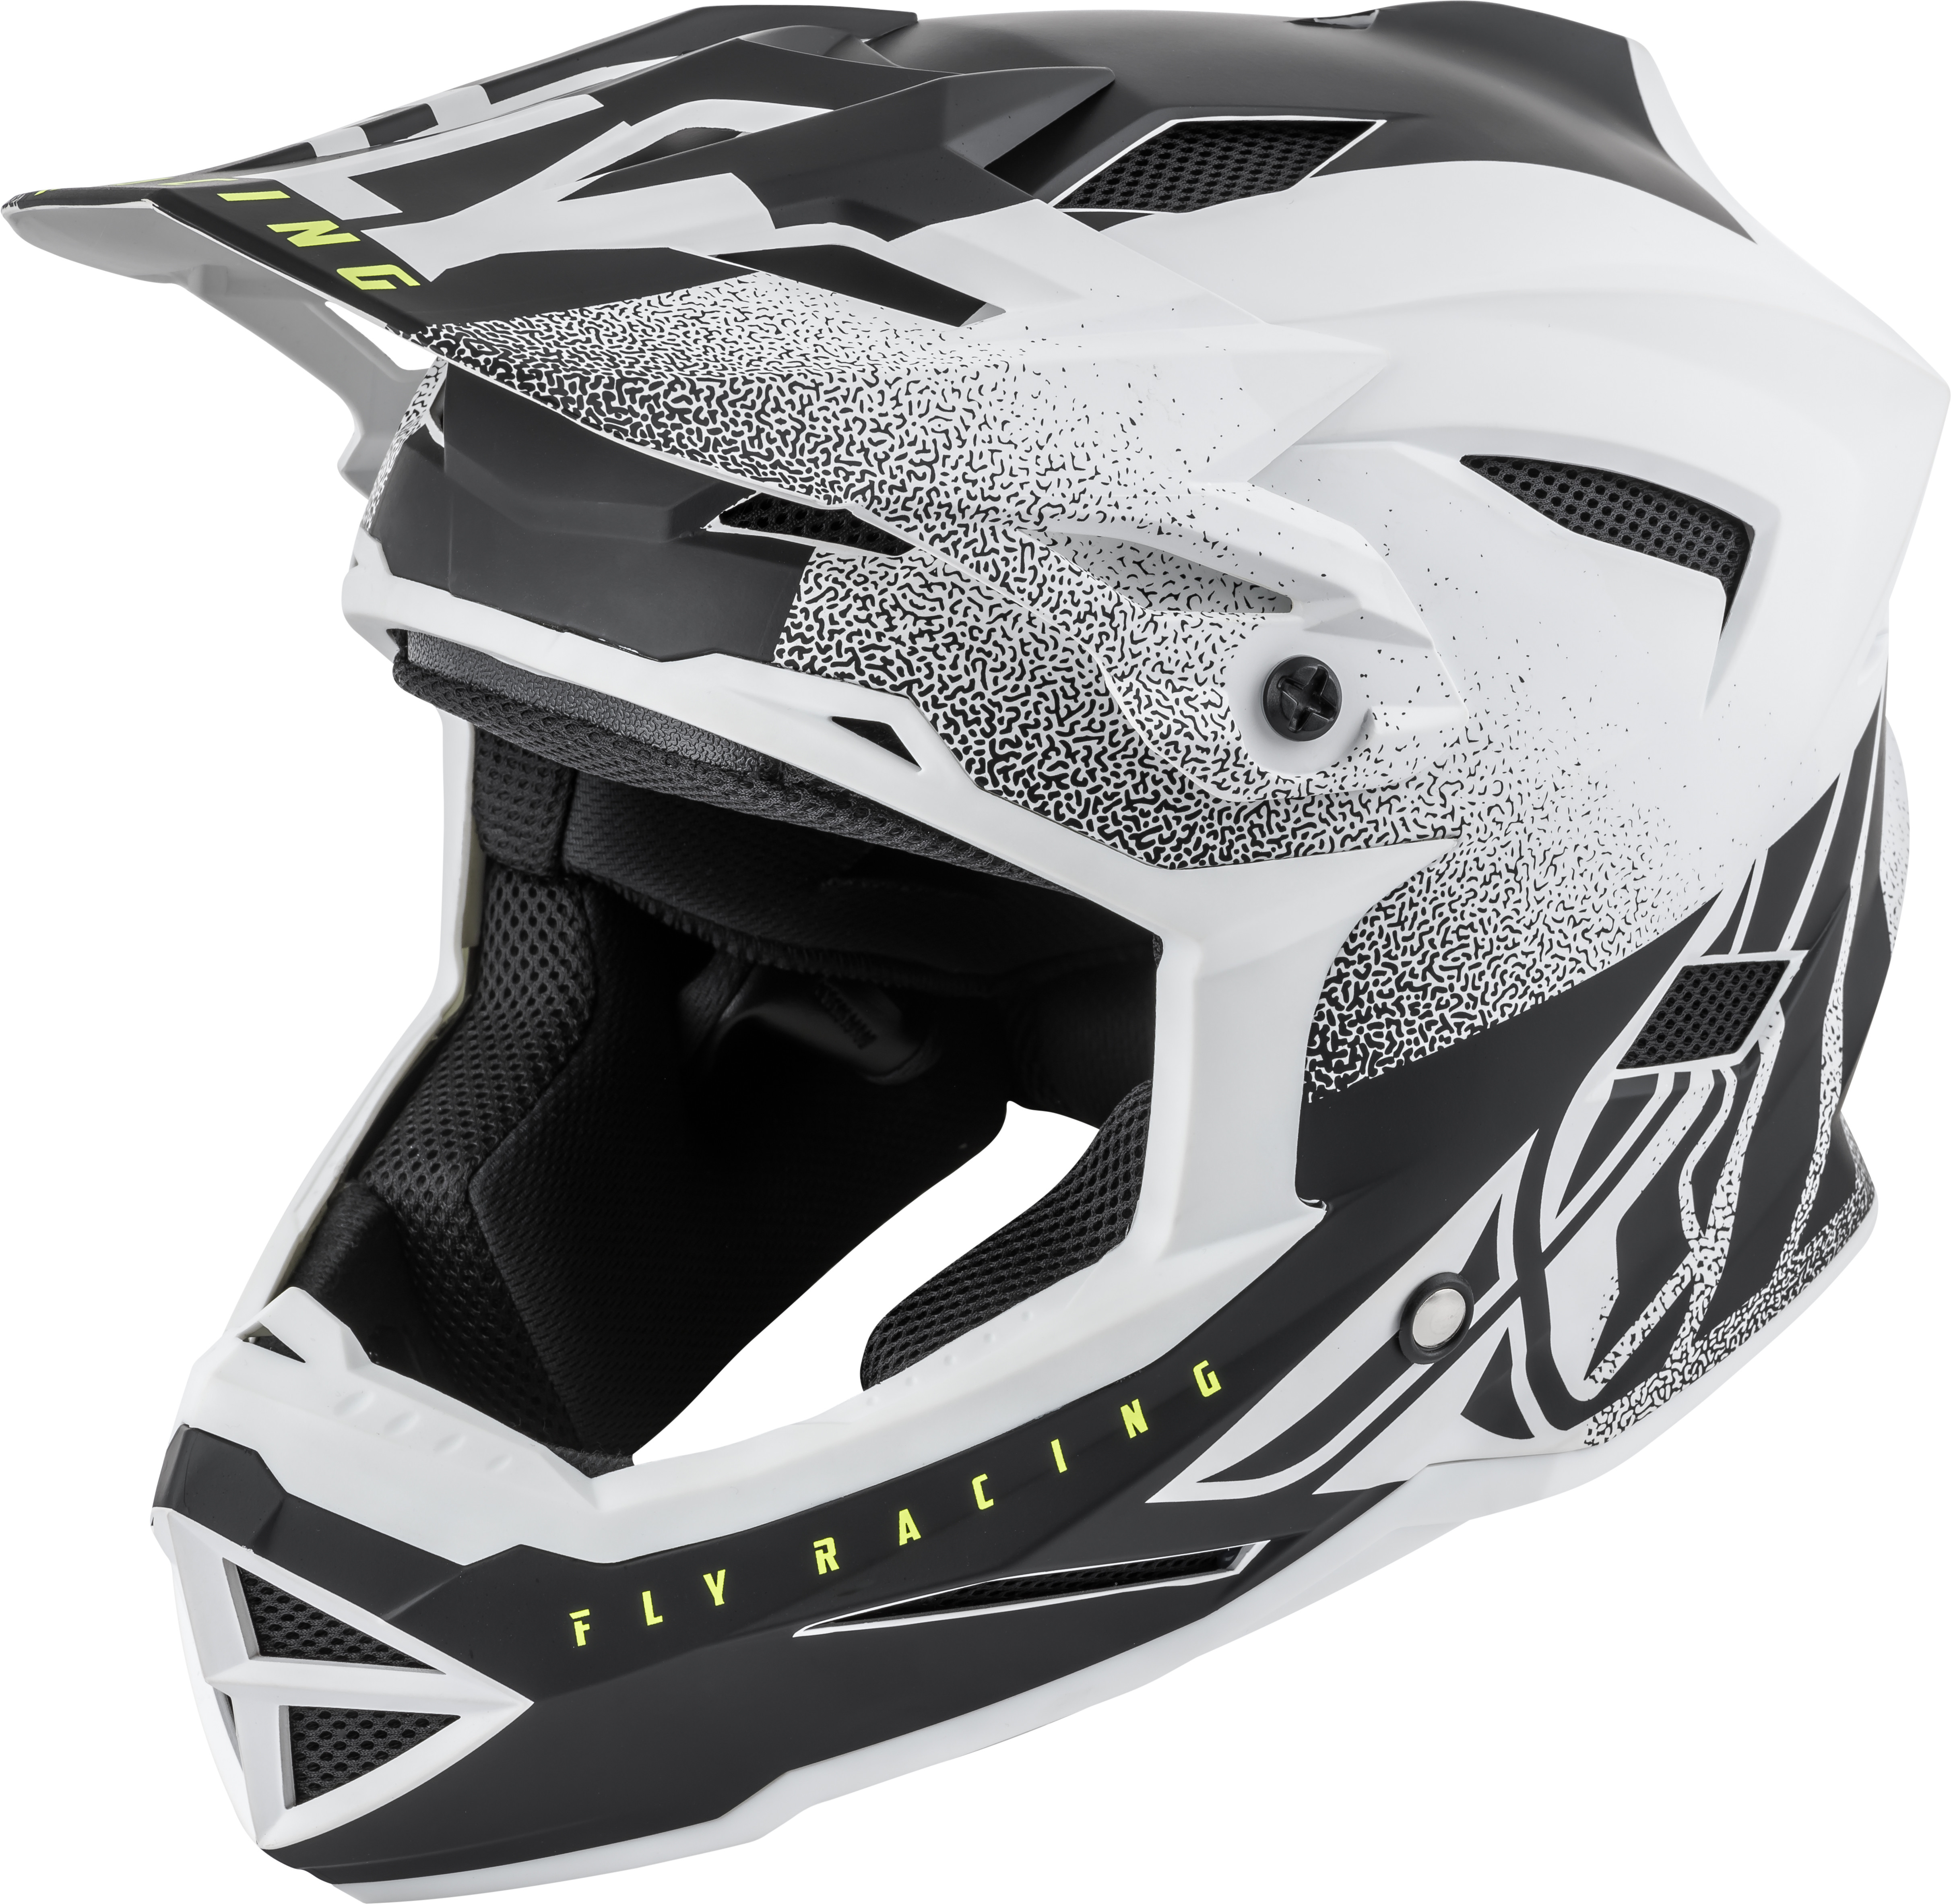 73-9171S Fly Racing Default Helmet Matte White/Black Sm